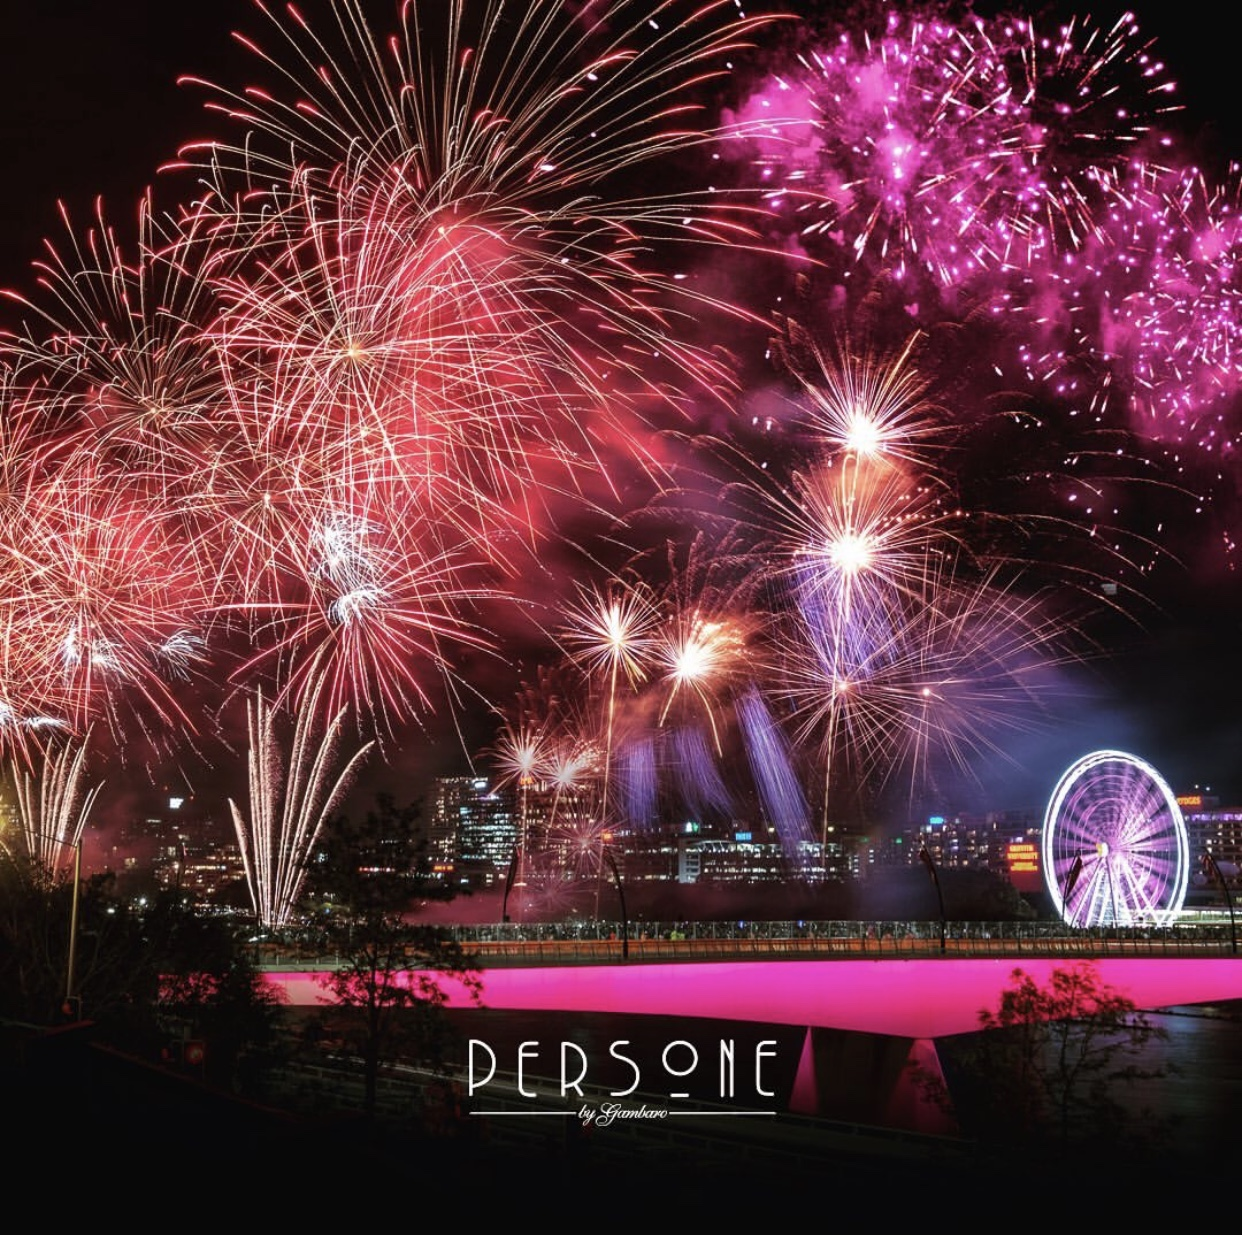 Persone New Years Eve 2019